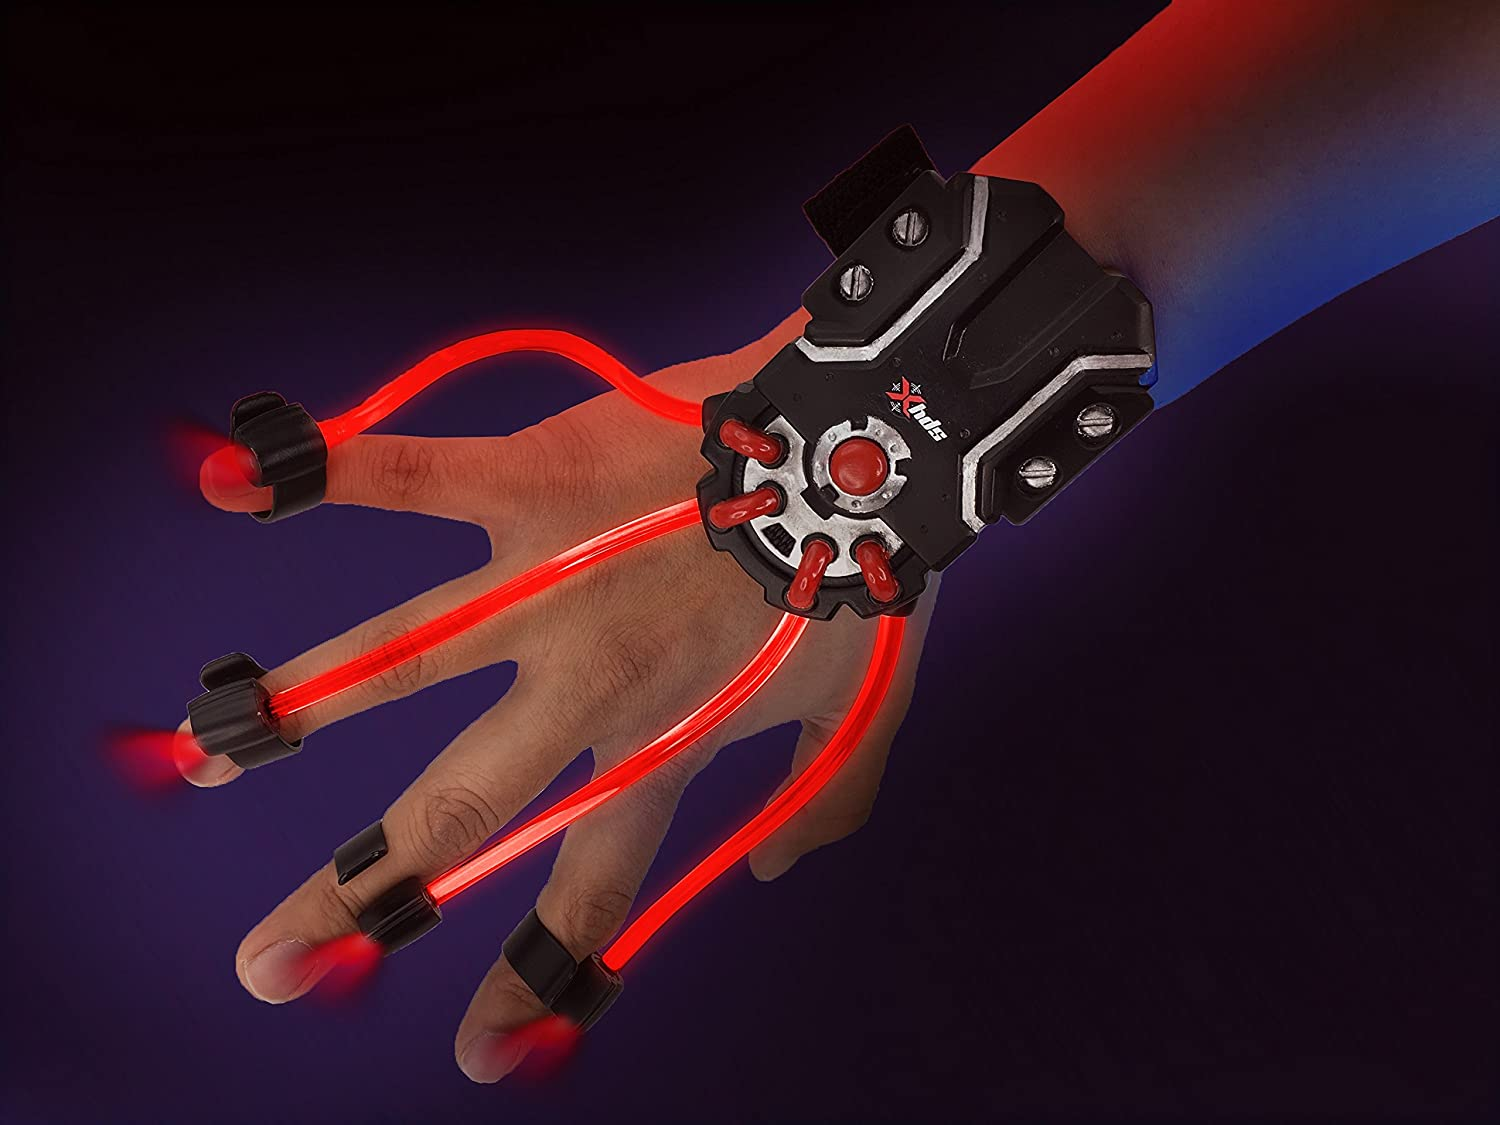 SpyX Light sale Hand – LED Discount mail order Up Glove Kids. Spy Toy for Co